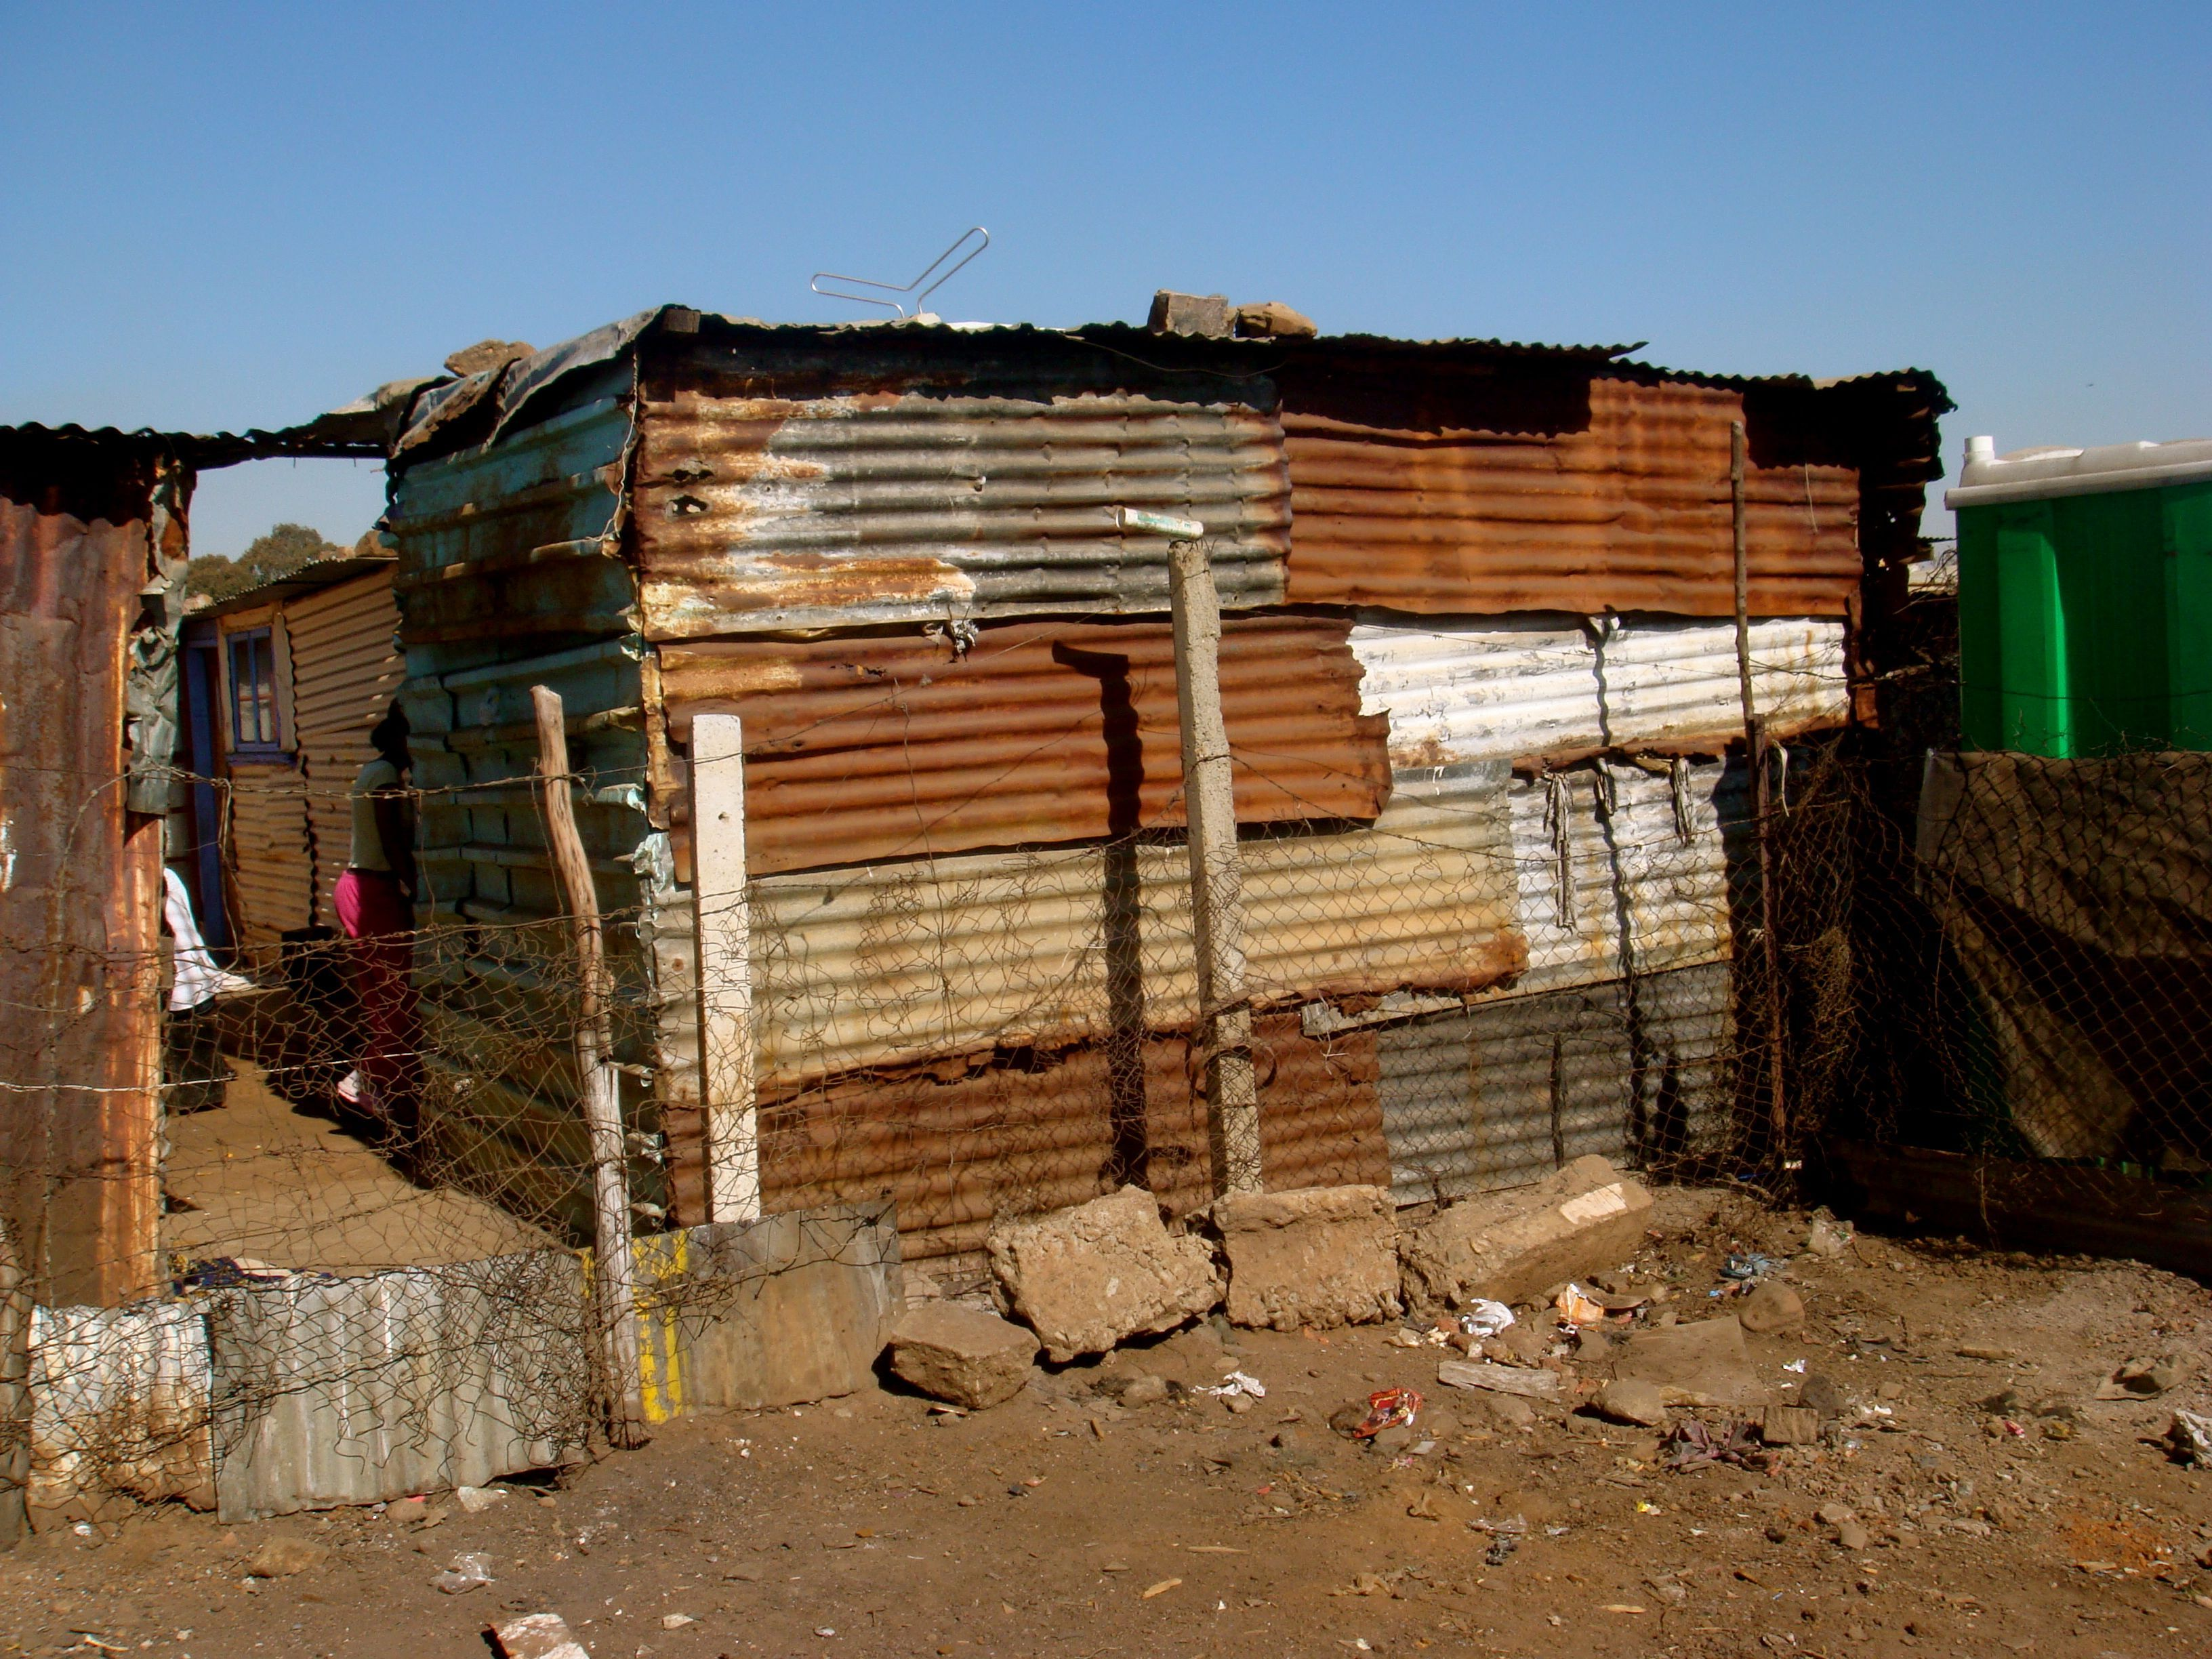 Backpacking in south africa johannesburg soweto township